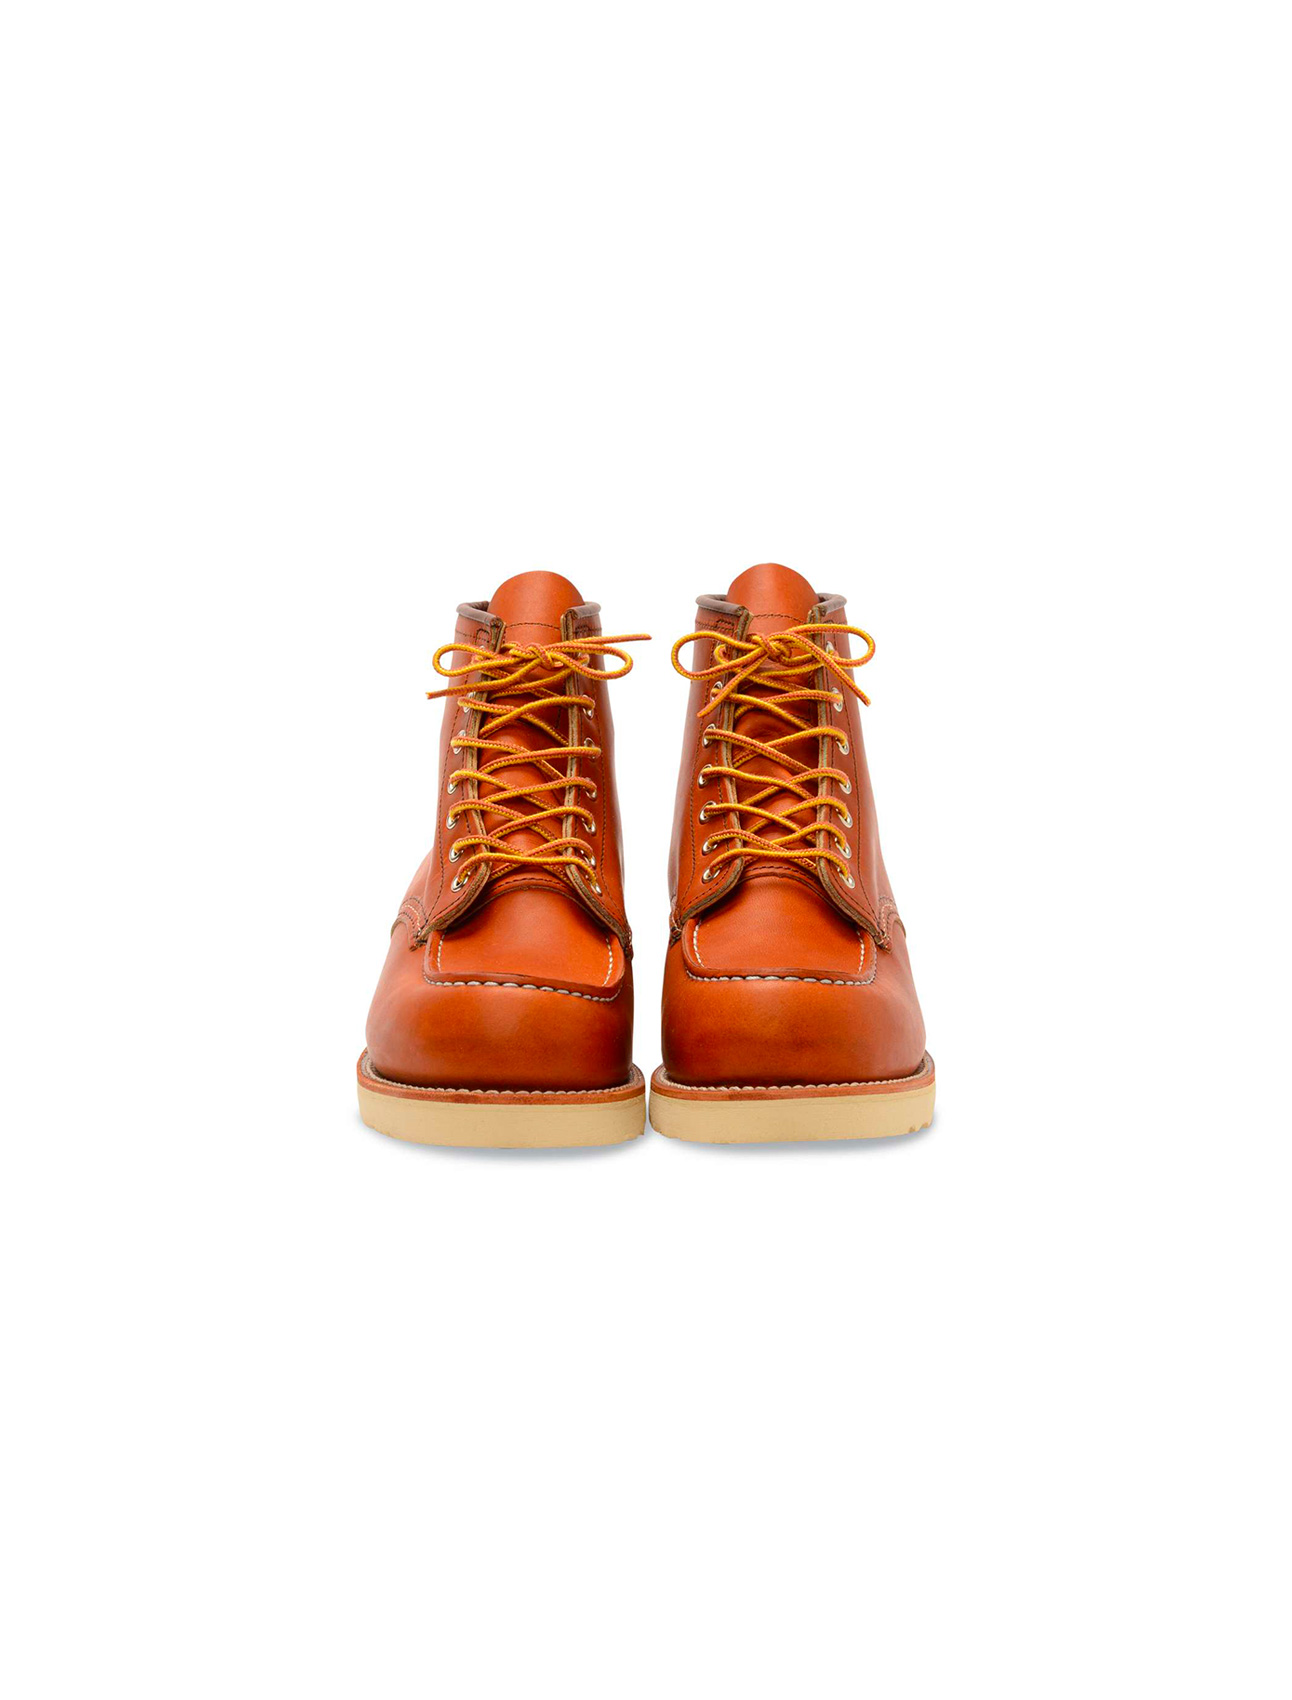 Red Wing 875 Moc Toe | Wooden Store